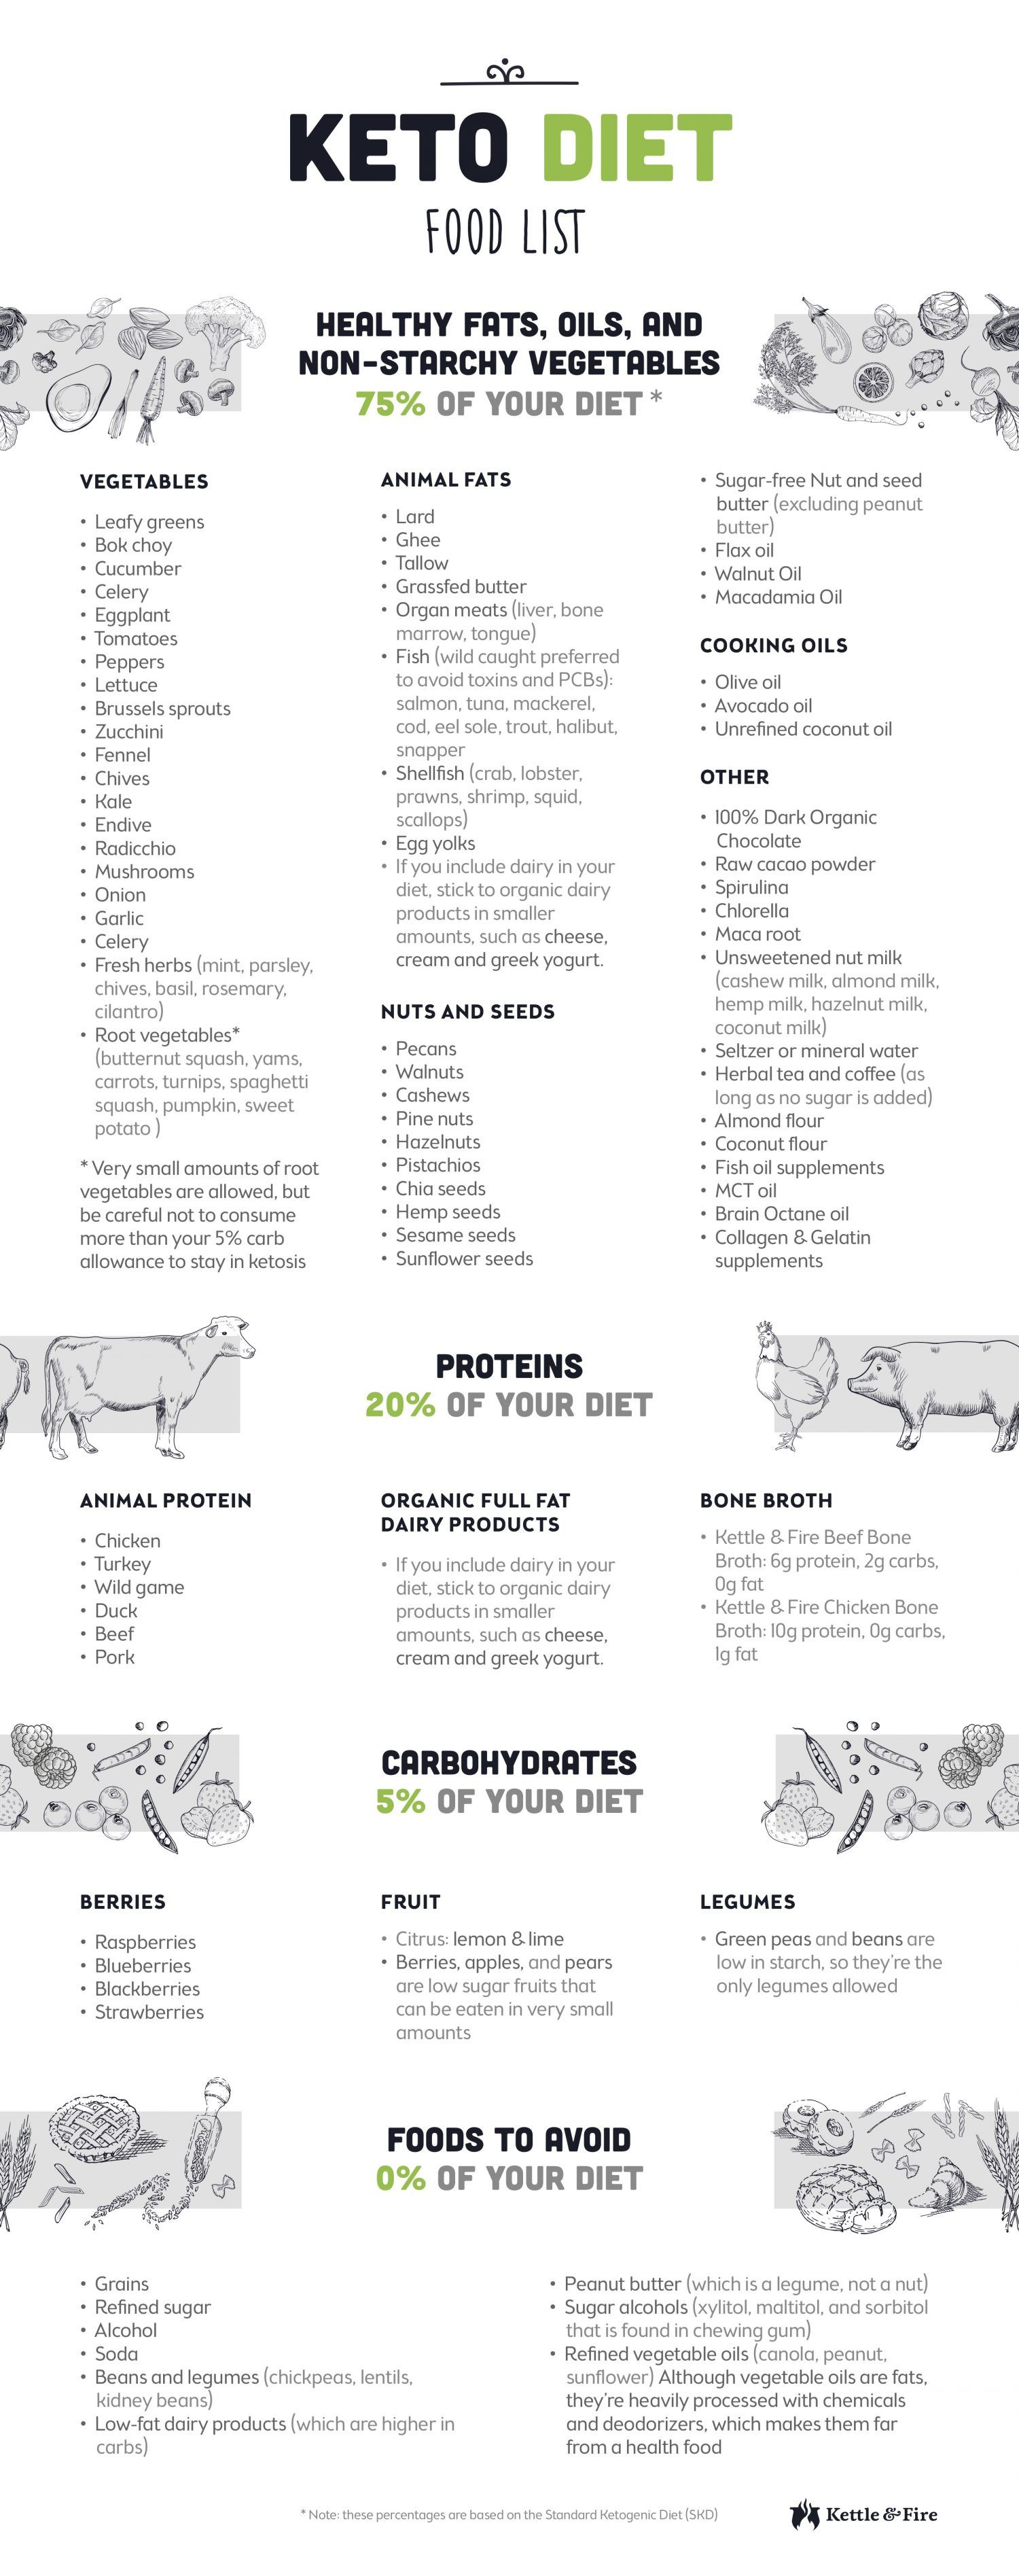 The atkins diet plan food list - A Detailed Keto Diet Food List To Help Guide Your Choices When It Comes To Grocery